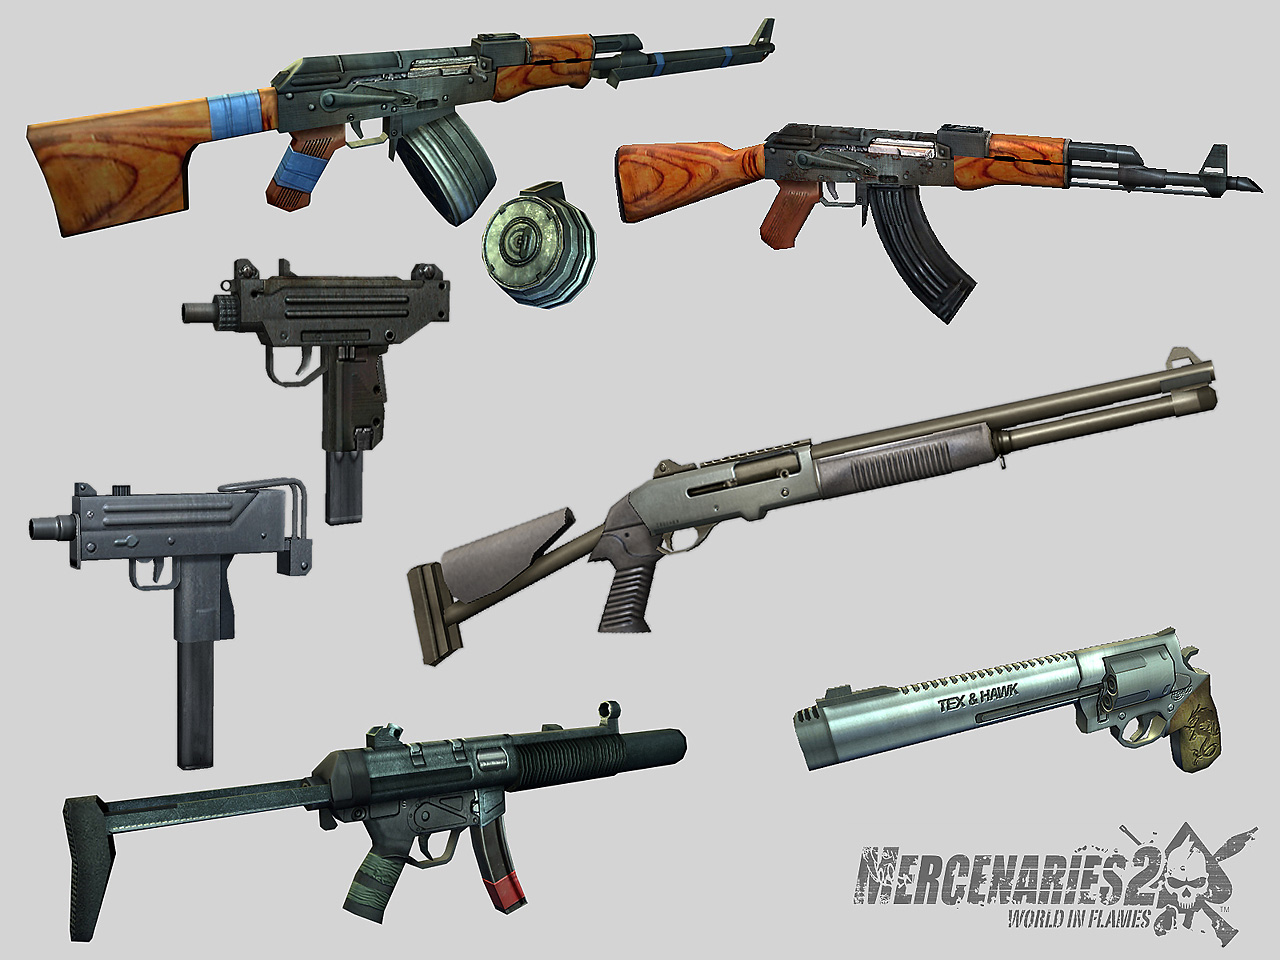 3rd person weapon models for Mercenaries 2: World in Flames game